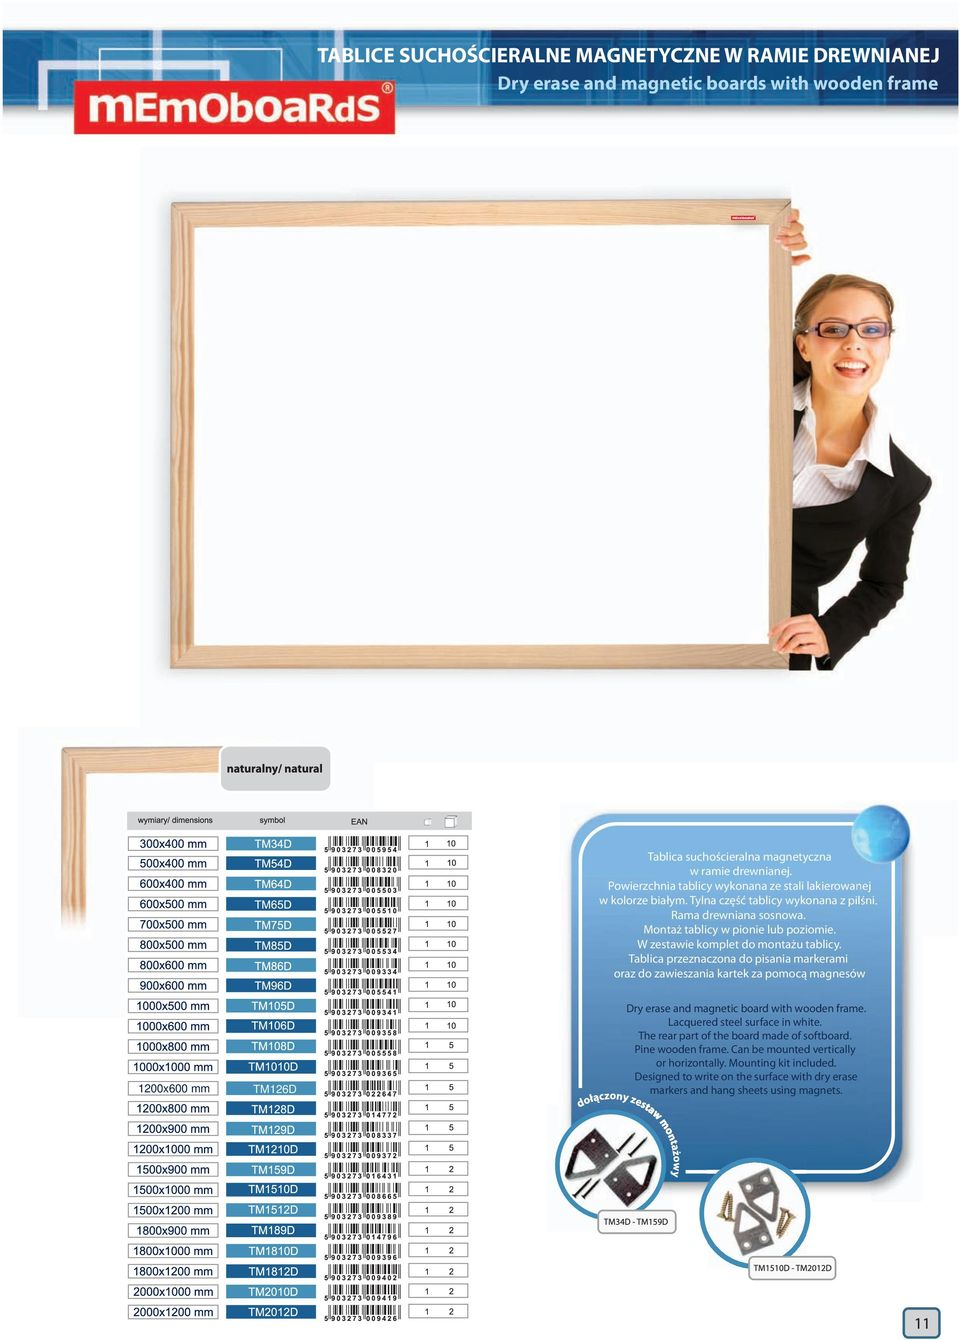 W zestawie komplet do montażu tablicy. Tablica przeznaczona do pisania markerami oraz do zawieszania kartek za pomocą magnesów 1200x600 mm TM126D Dry erase and magnetic board with wooden frame.